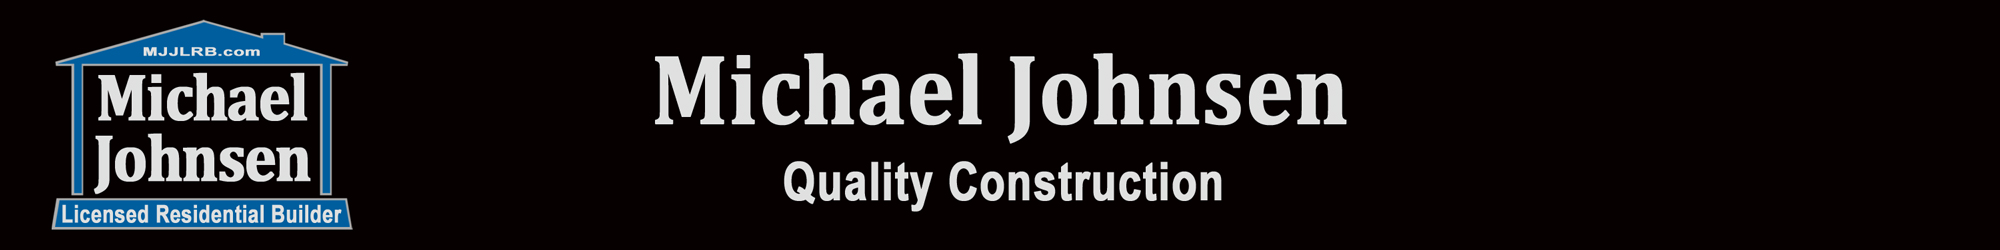 Michael Johnsen Licenced Residential Builder